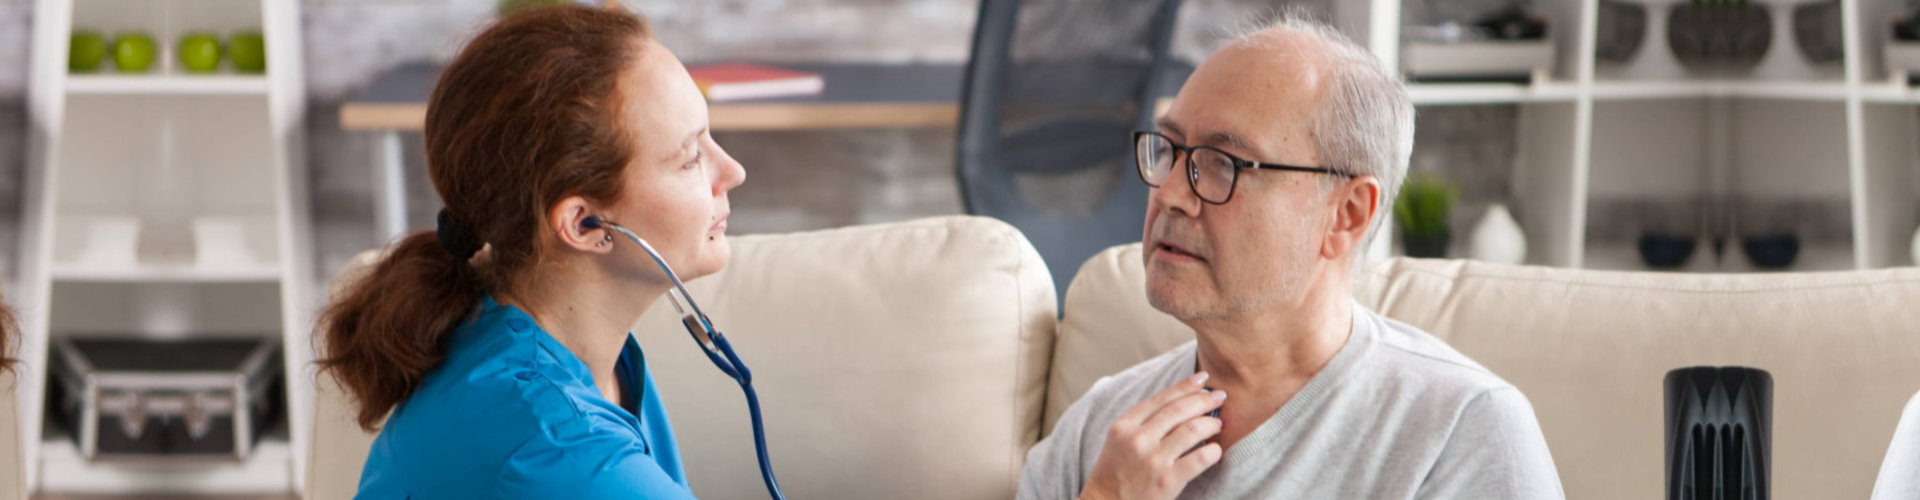 caregiver checking the health of the senior man